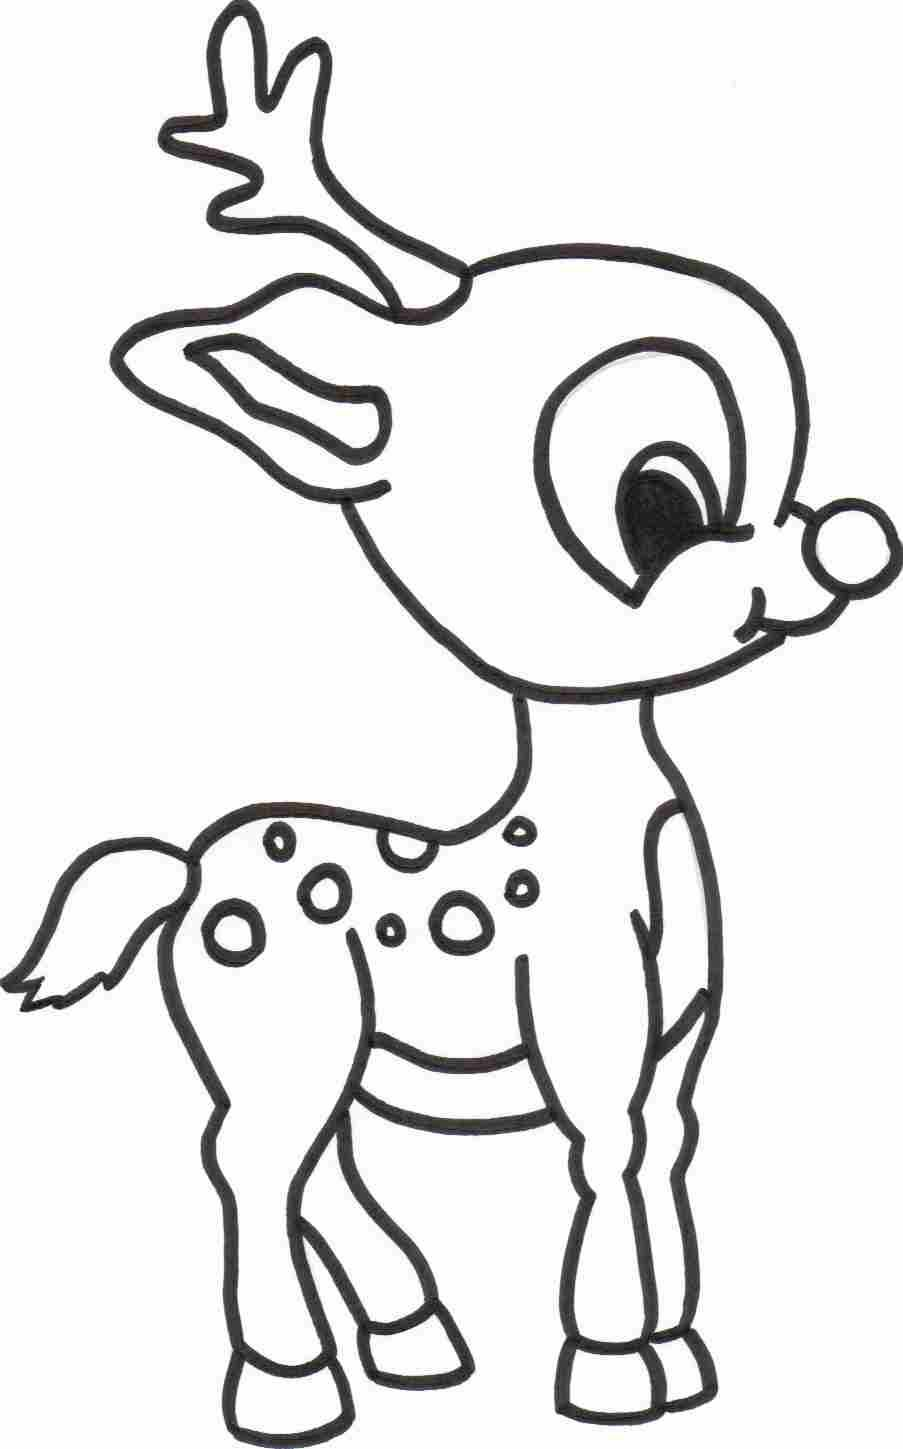 Free Disney Christmas Colouring Sheets With Printable Reindeer Coloring Pages For Kids Sketch Pinterest